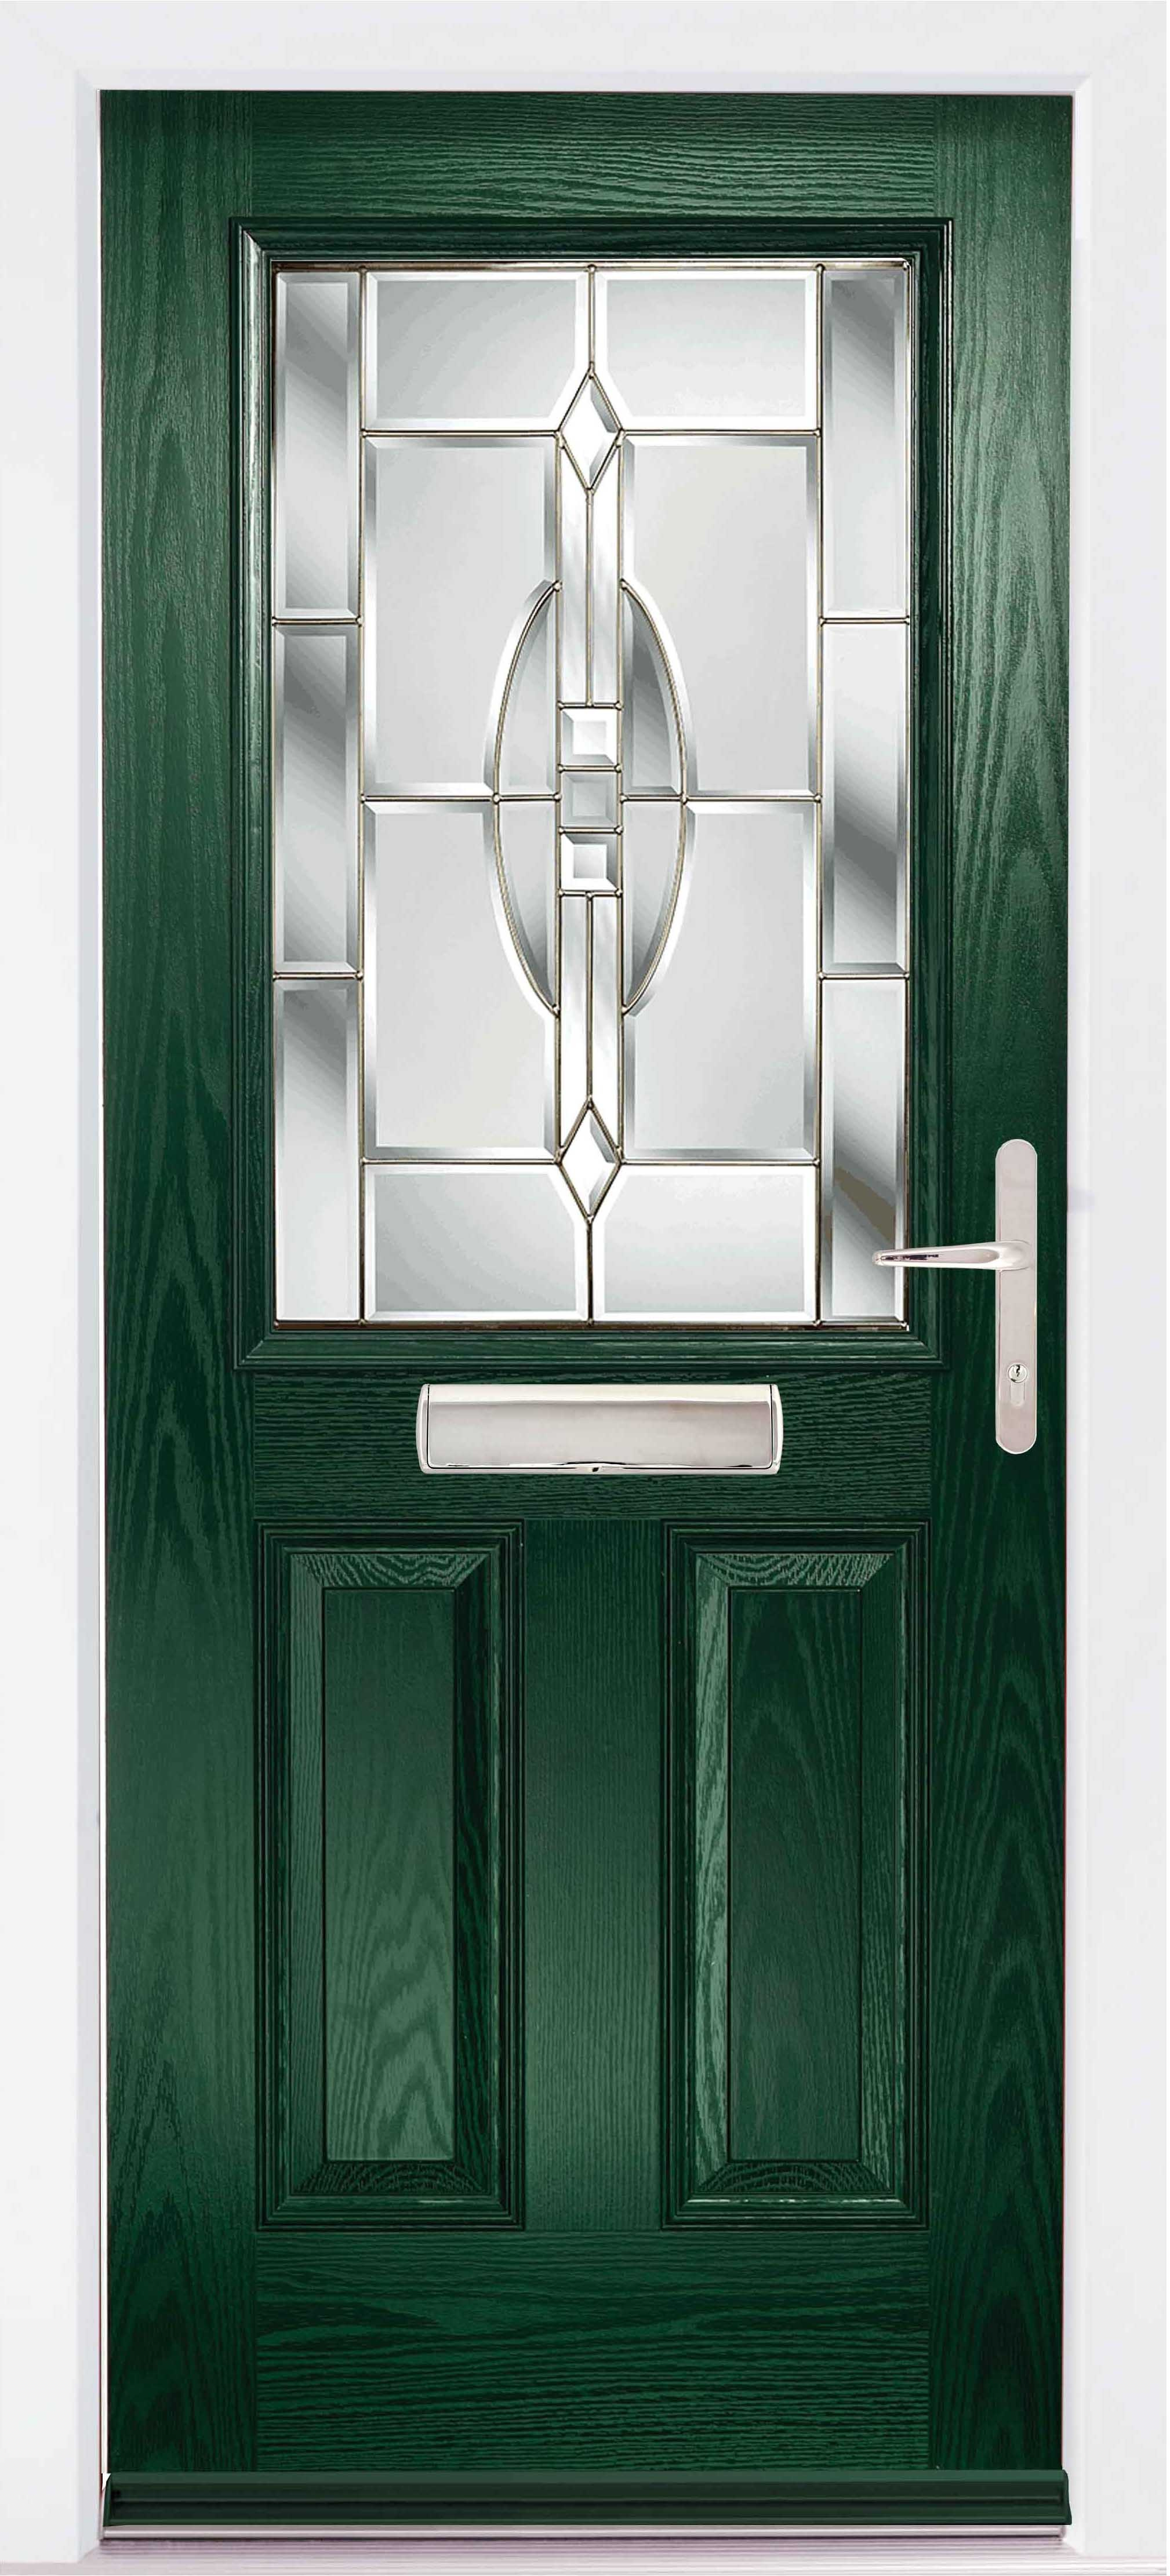 The Lathkill Composite door in Green